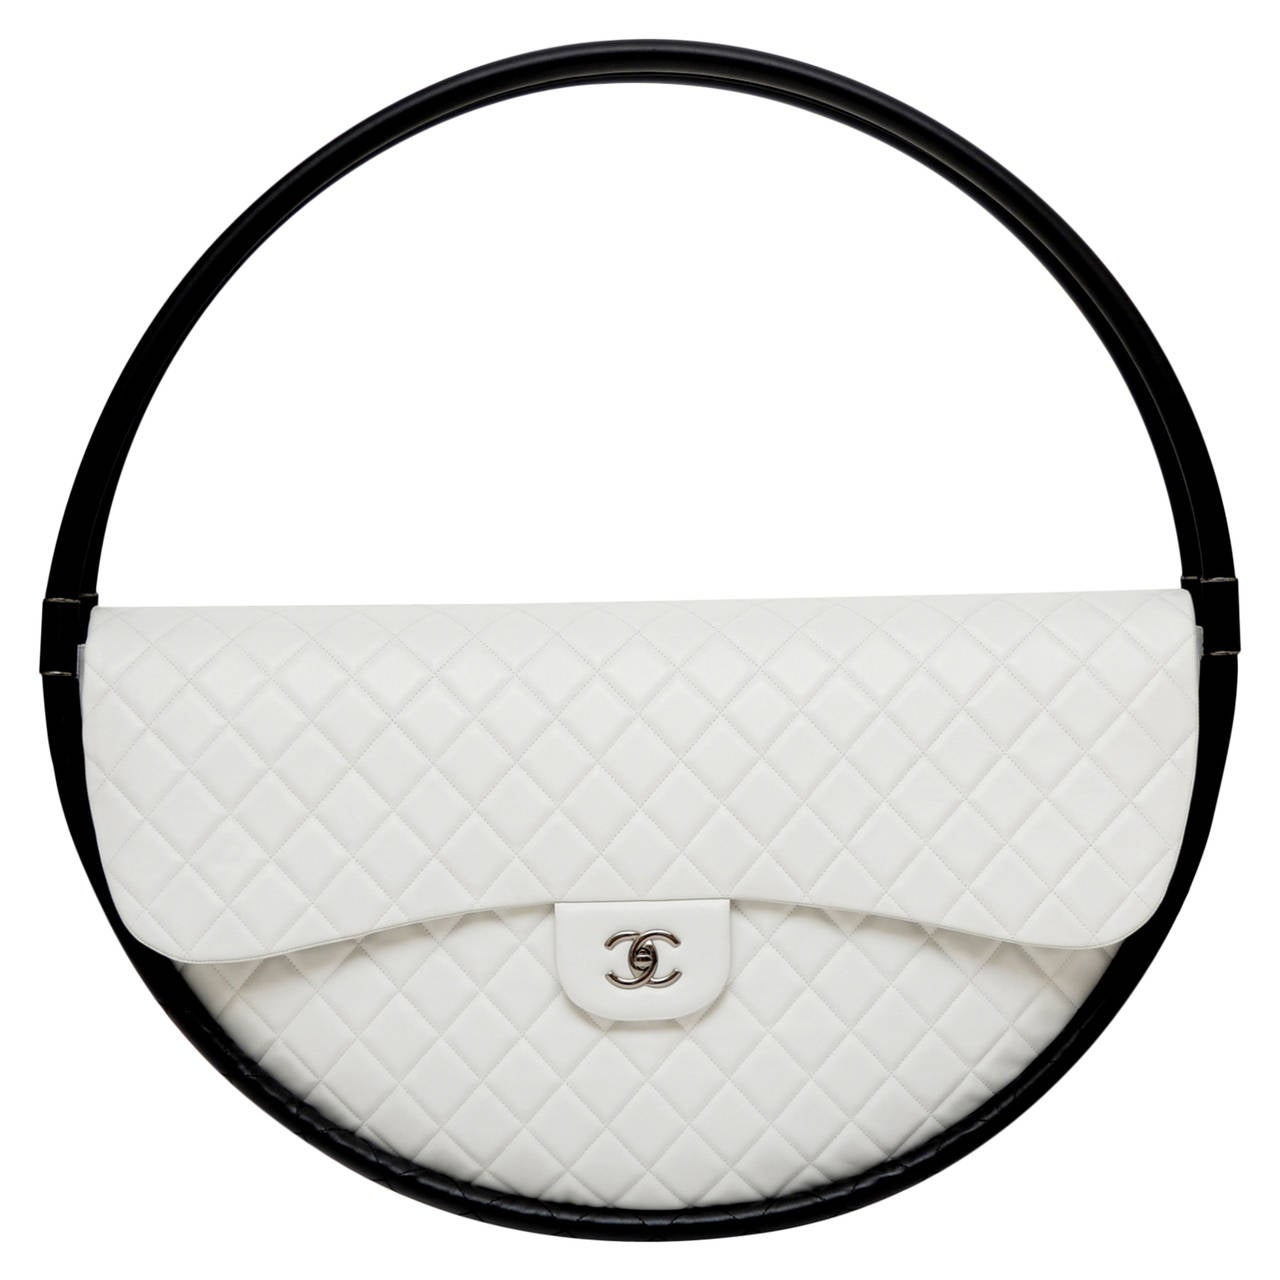 Chanel ART Piece For Display Only Hula Hoop Runway X-Large Bag Limited  2013